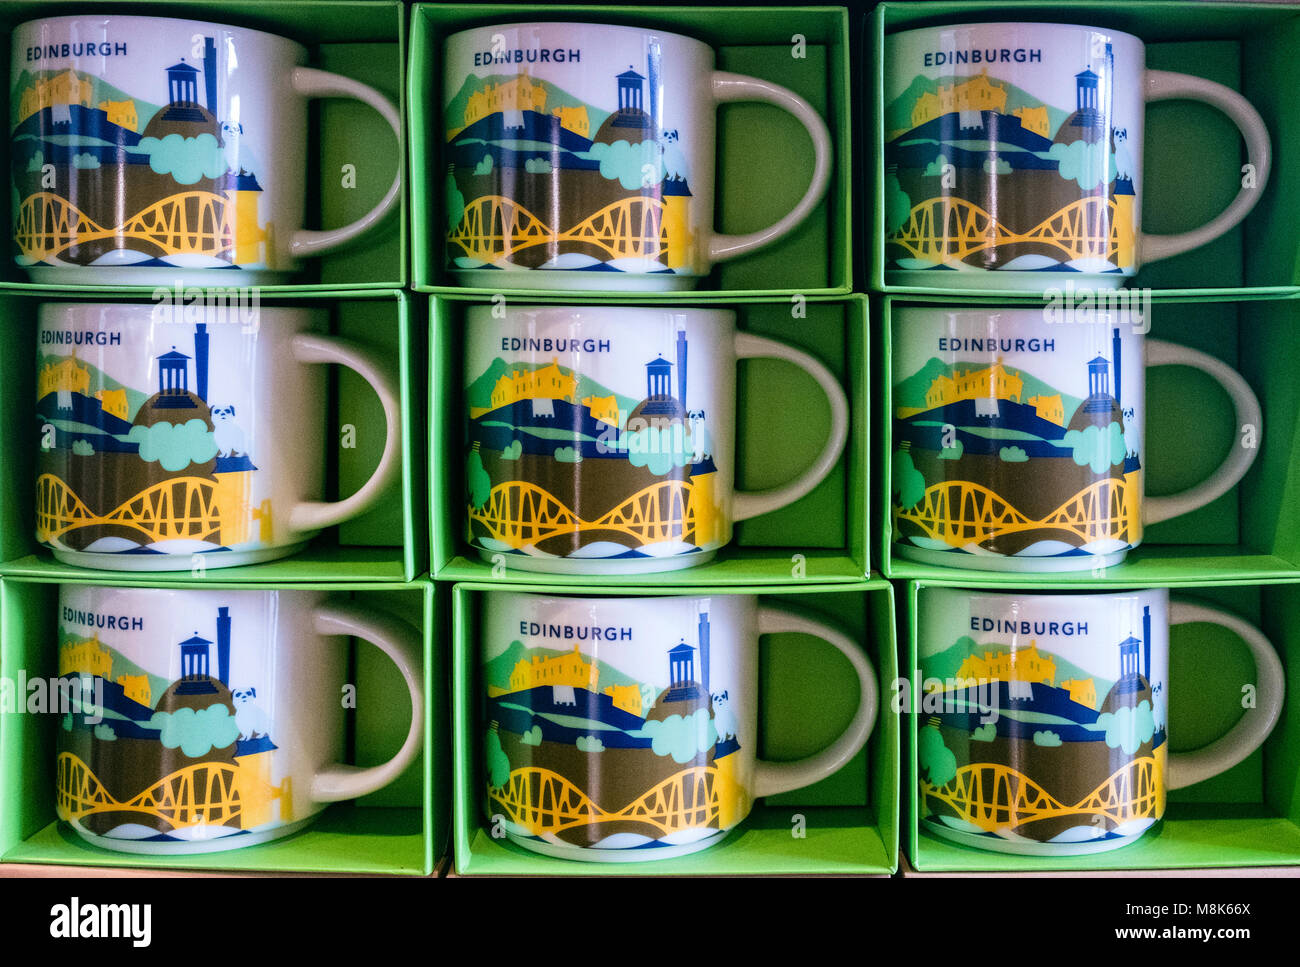 Starbucks mugs for sale in Edinburgh Cafe with themed city logos. - Stock Image